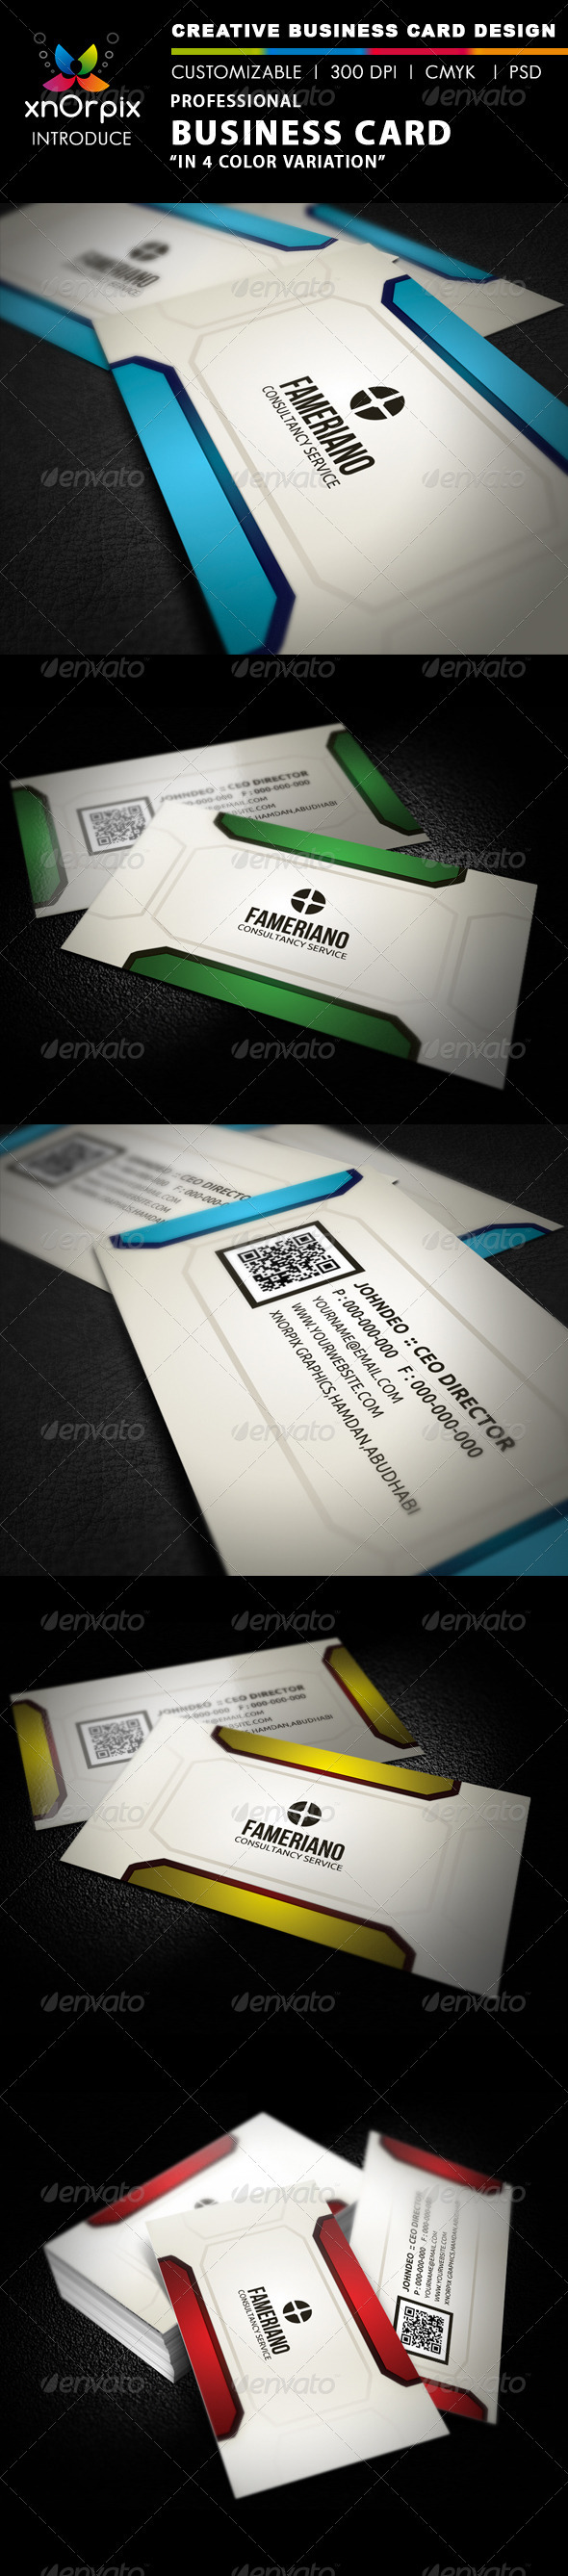 Professional Business Card - Business Cards Print Templates